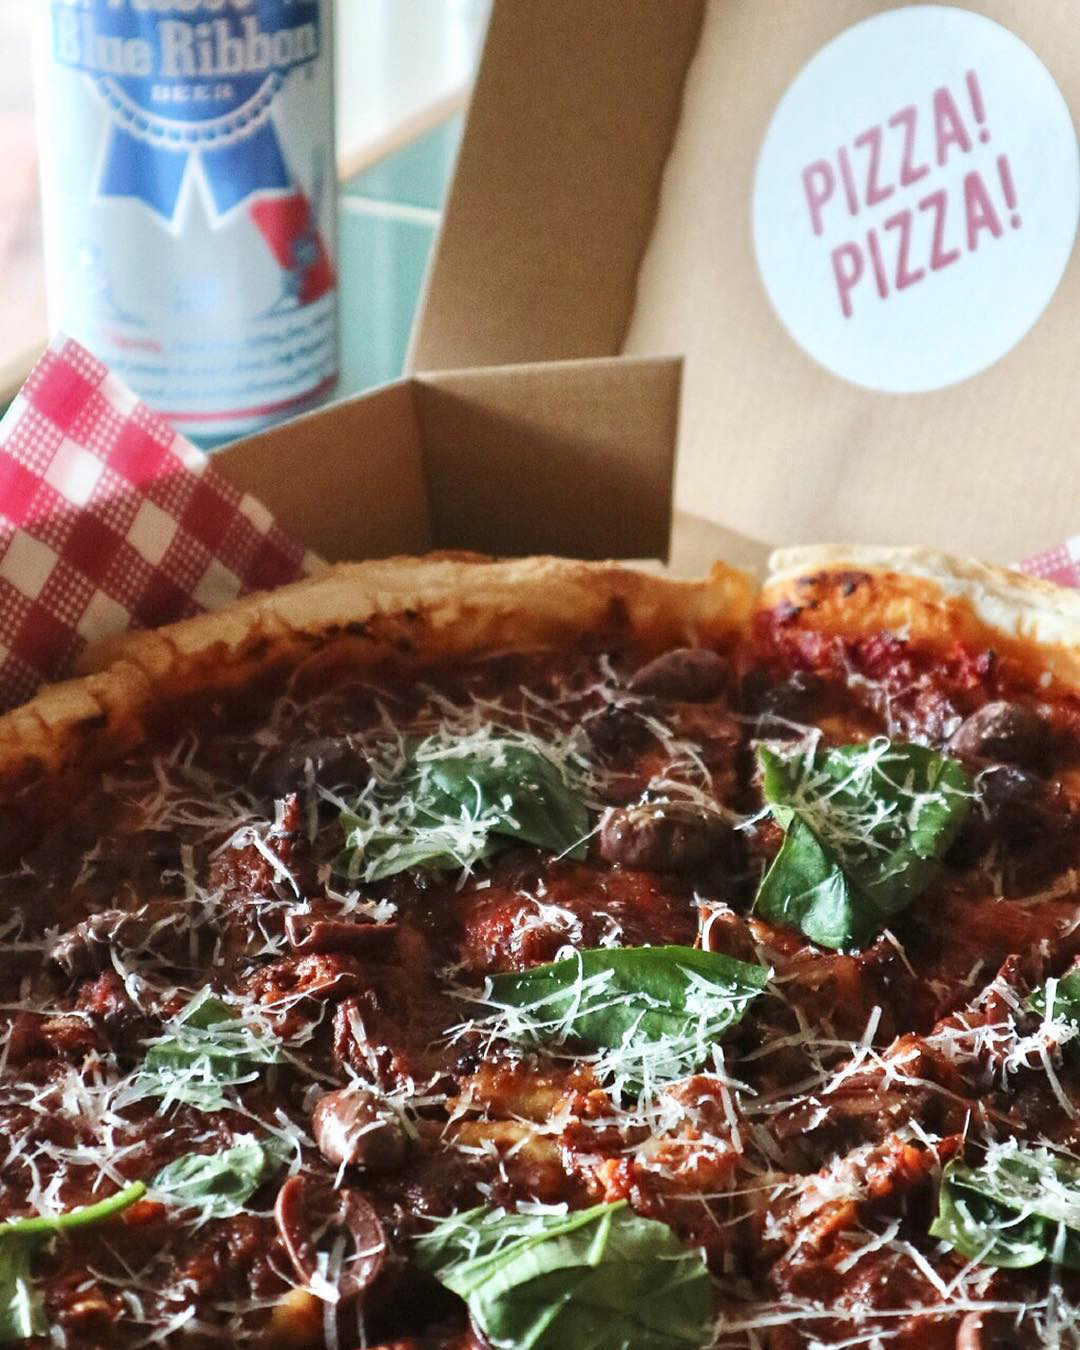 A takeaway pizza box with meaty and cheesy topppings accompanied by a Blue Ribbon beer.